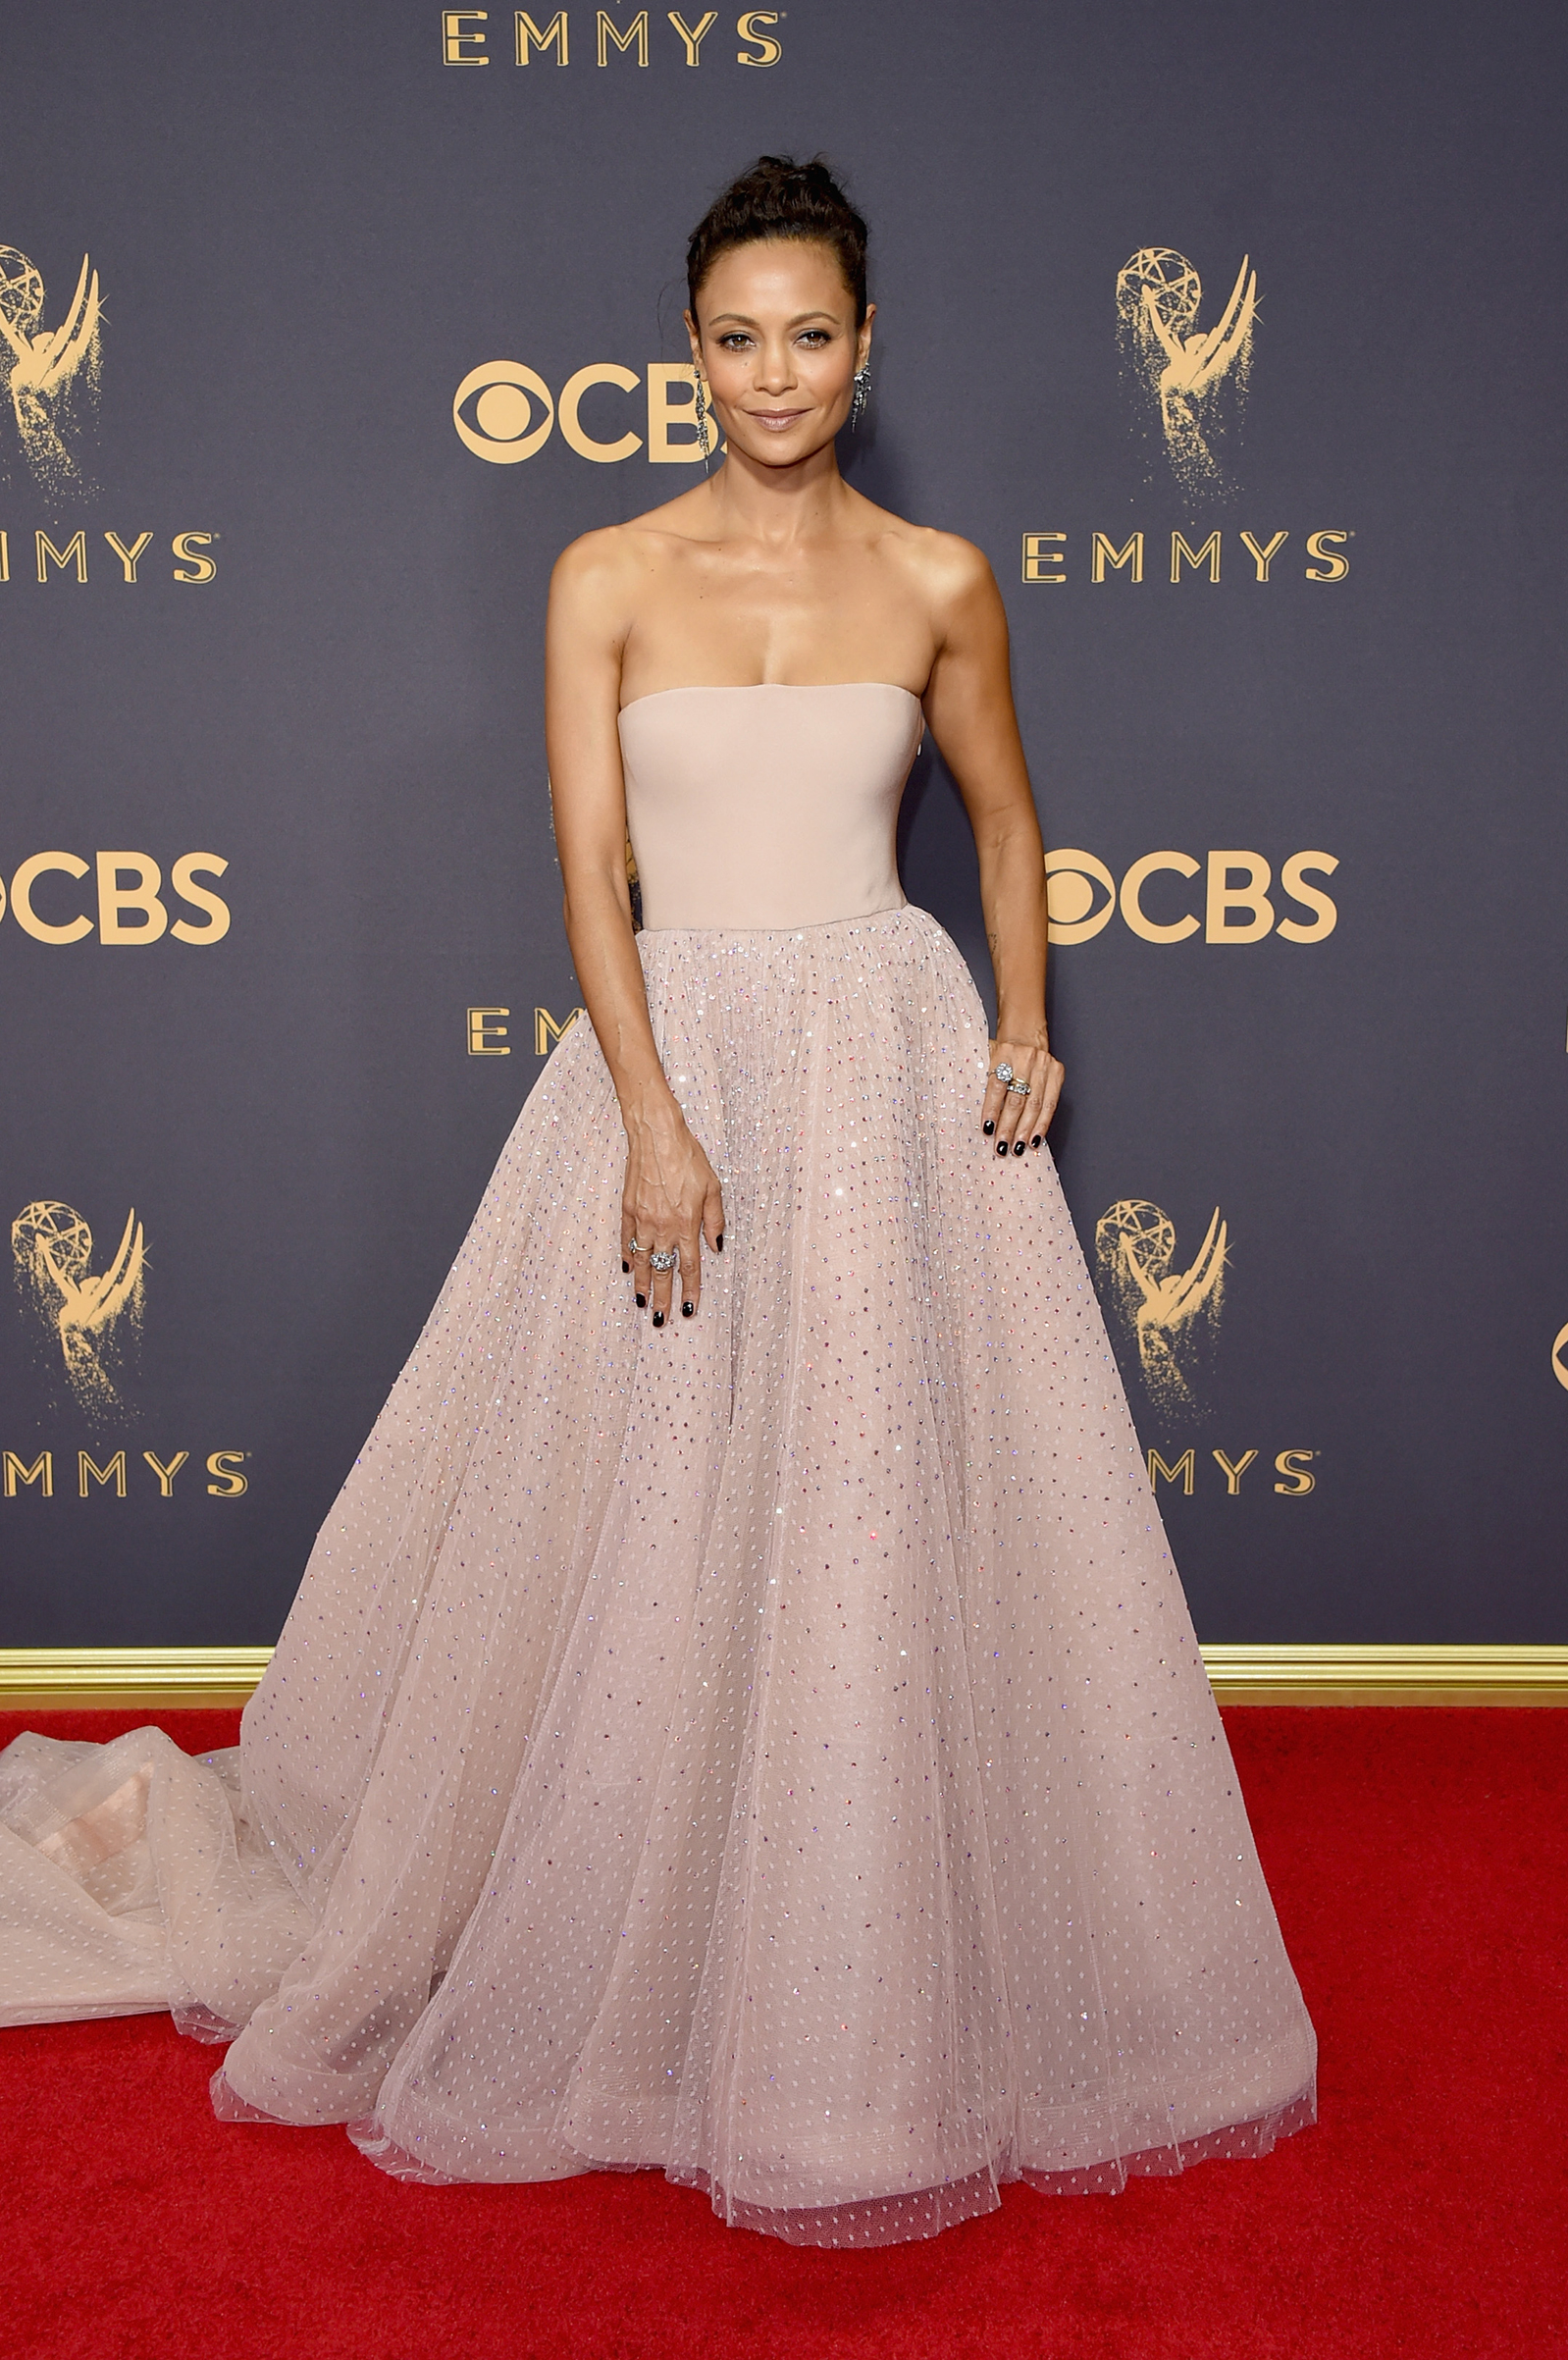 Actor Zoe Saldana attends the 69th Annual Primetime Emmy Awards at Microsoft Theater on September 17, 2017 in Los Angeles, California.